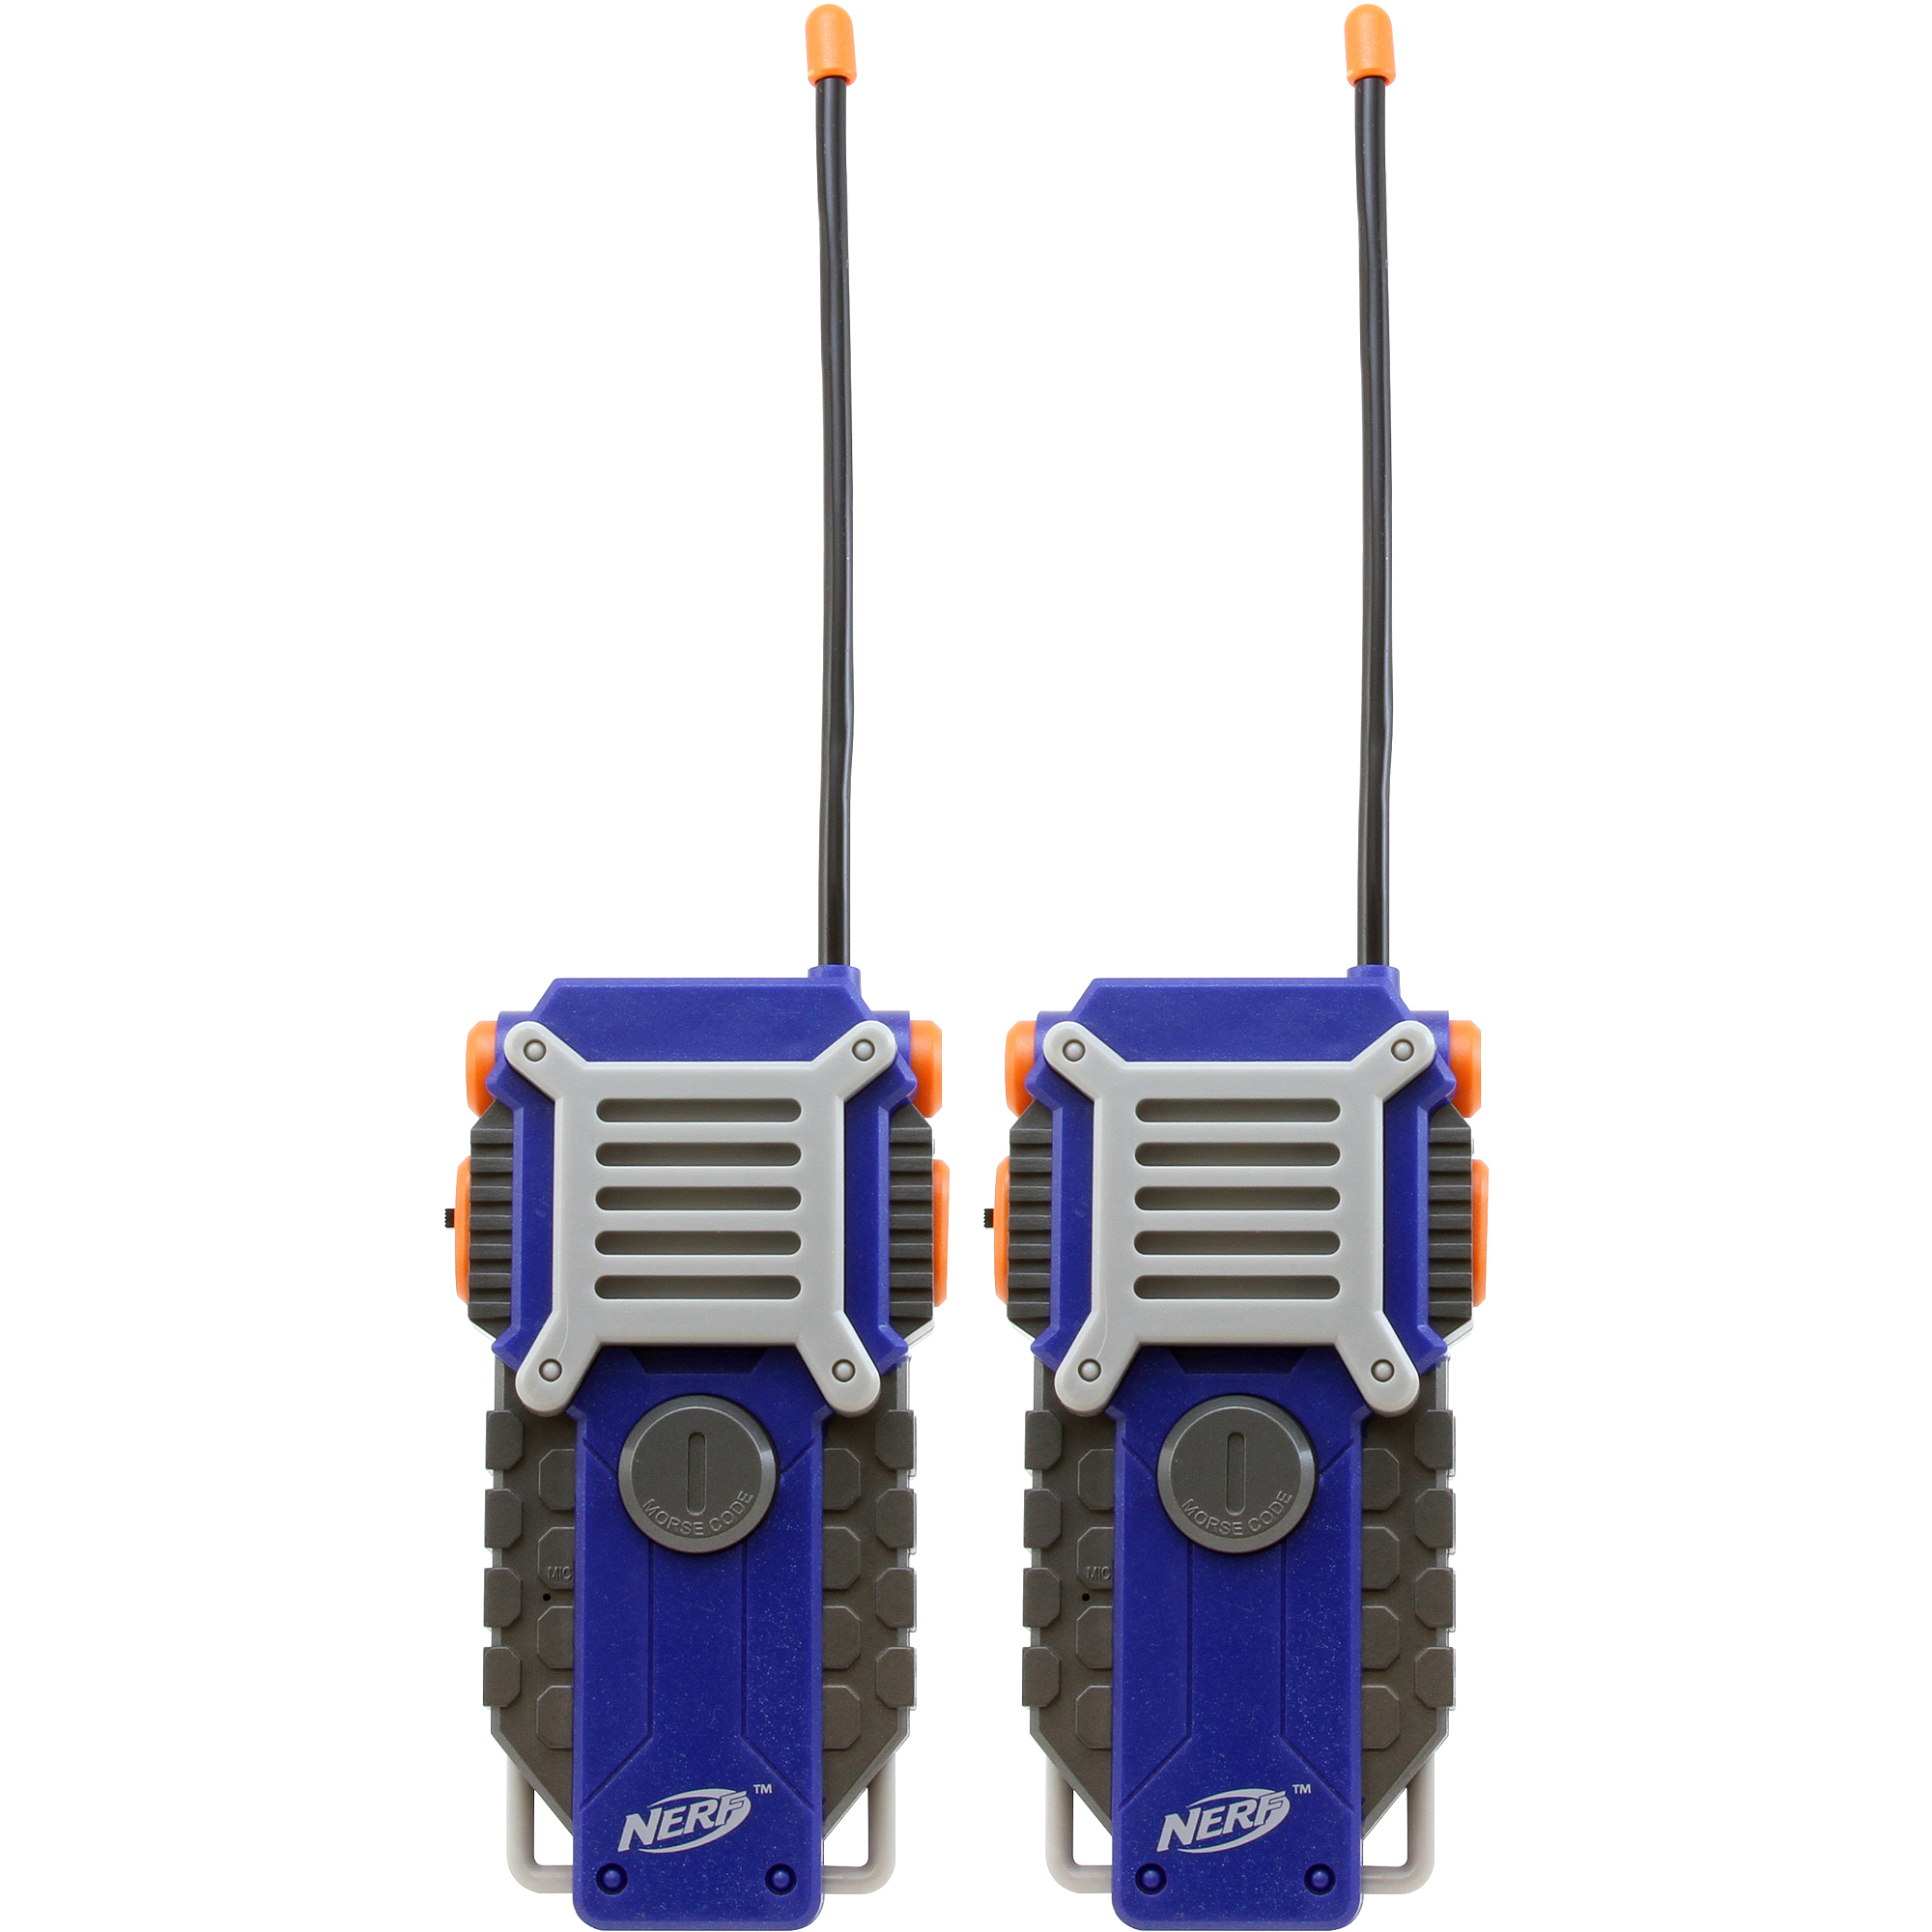 Nerf Molded Walkie Talkies One Pair by Sakar International